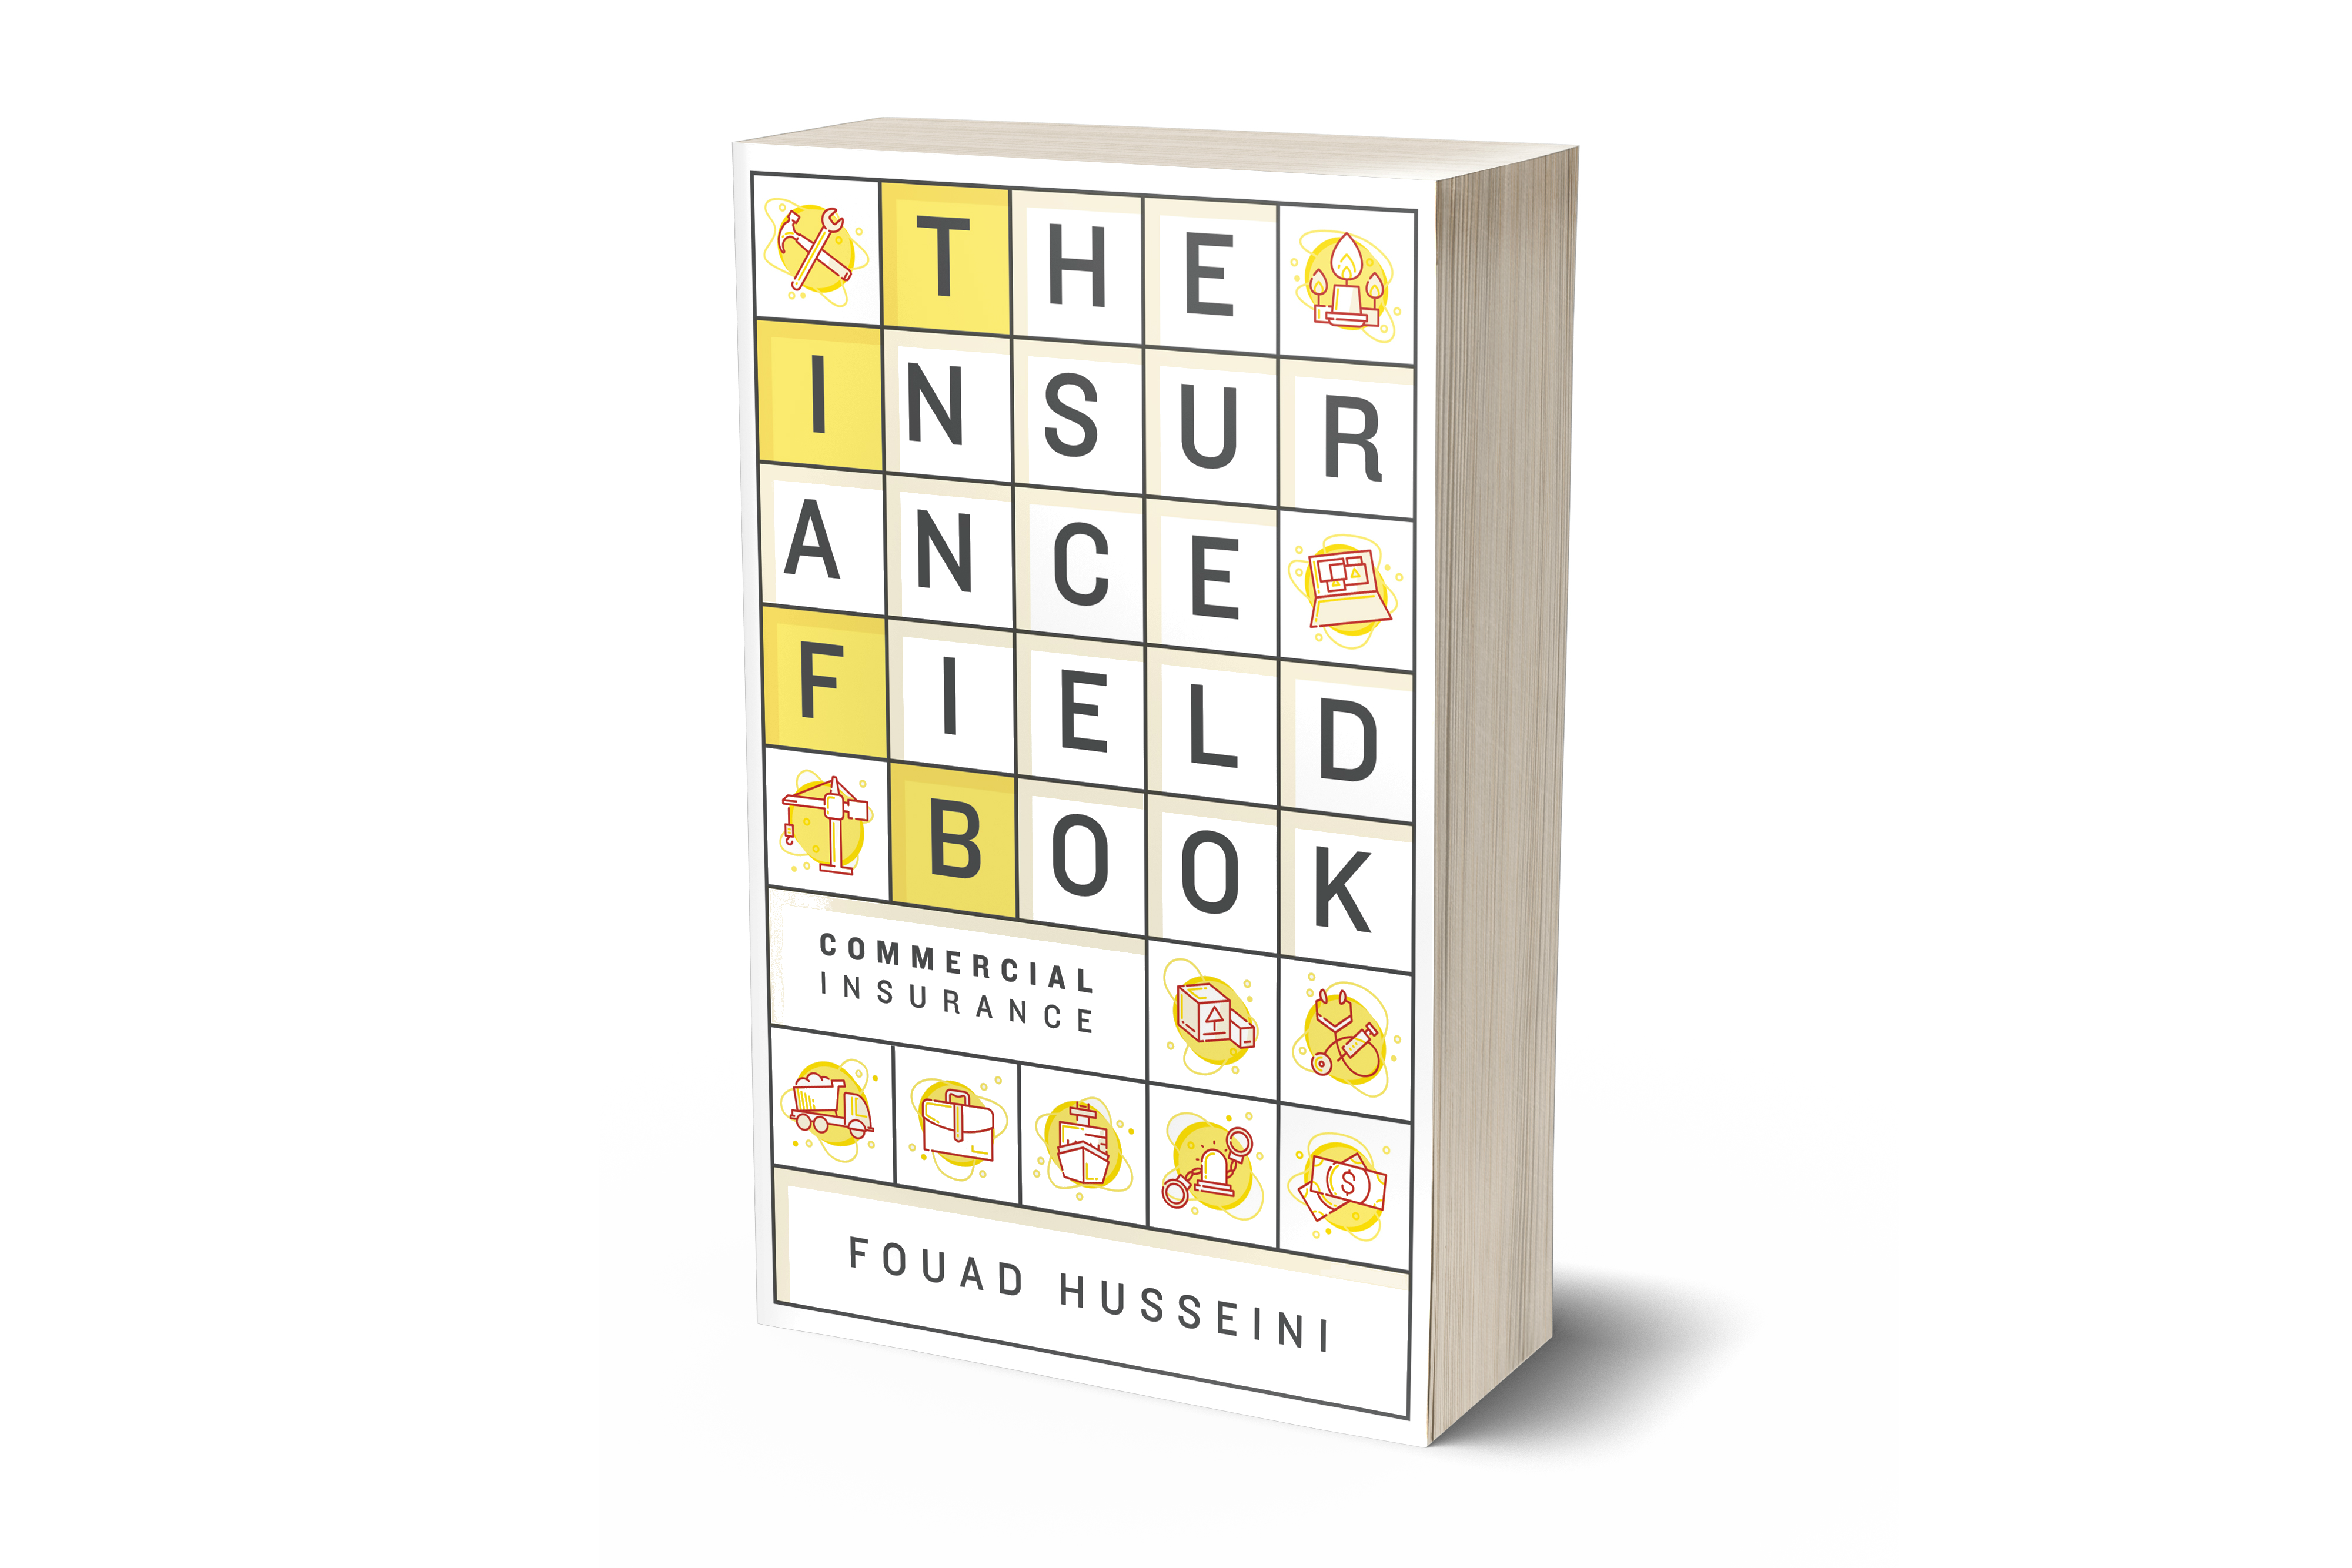 the insurance field book by Fouad Husseini